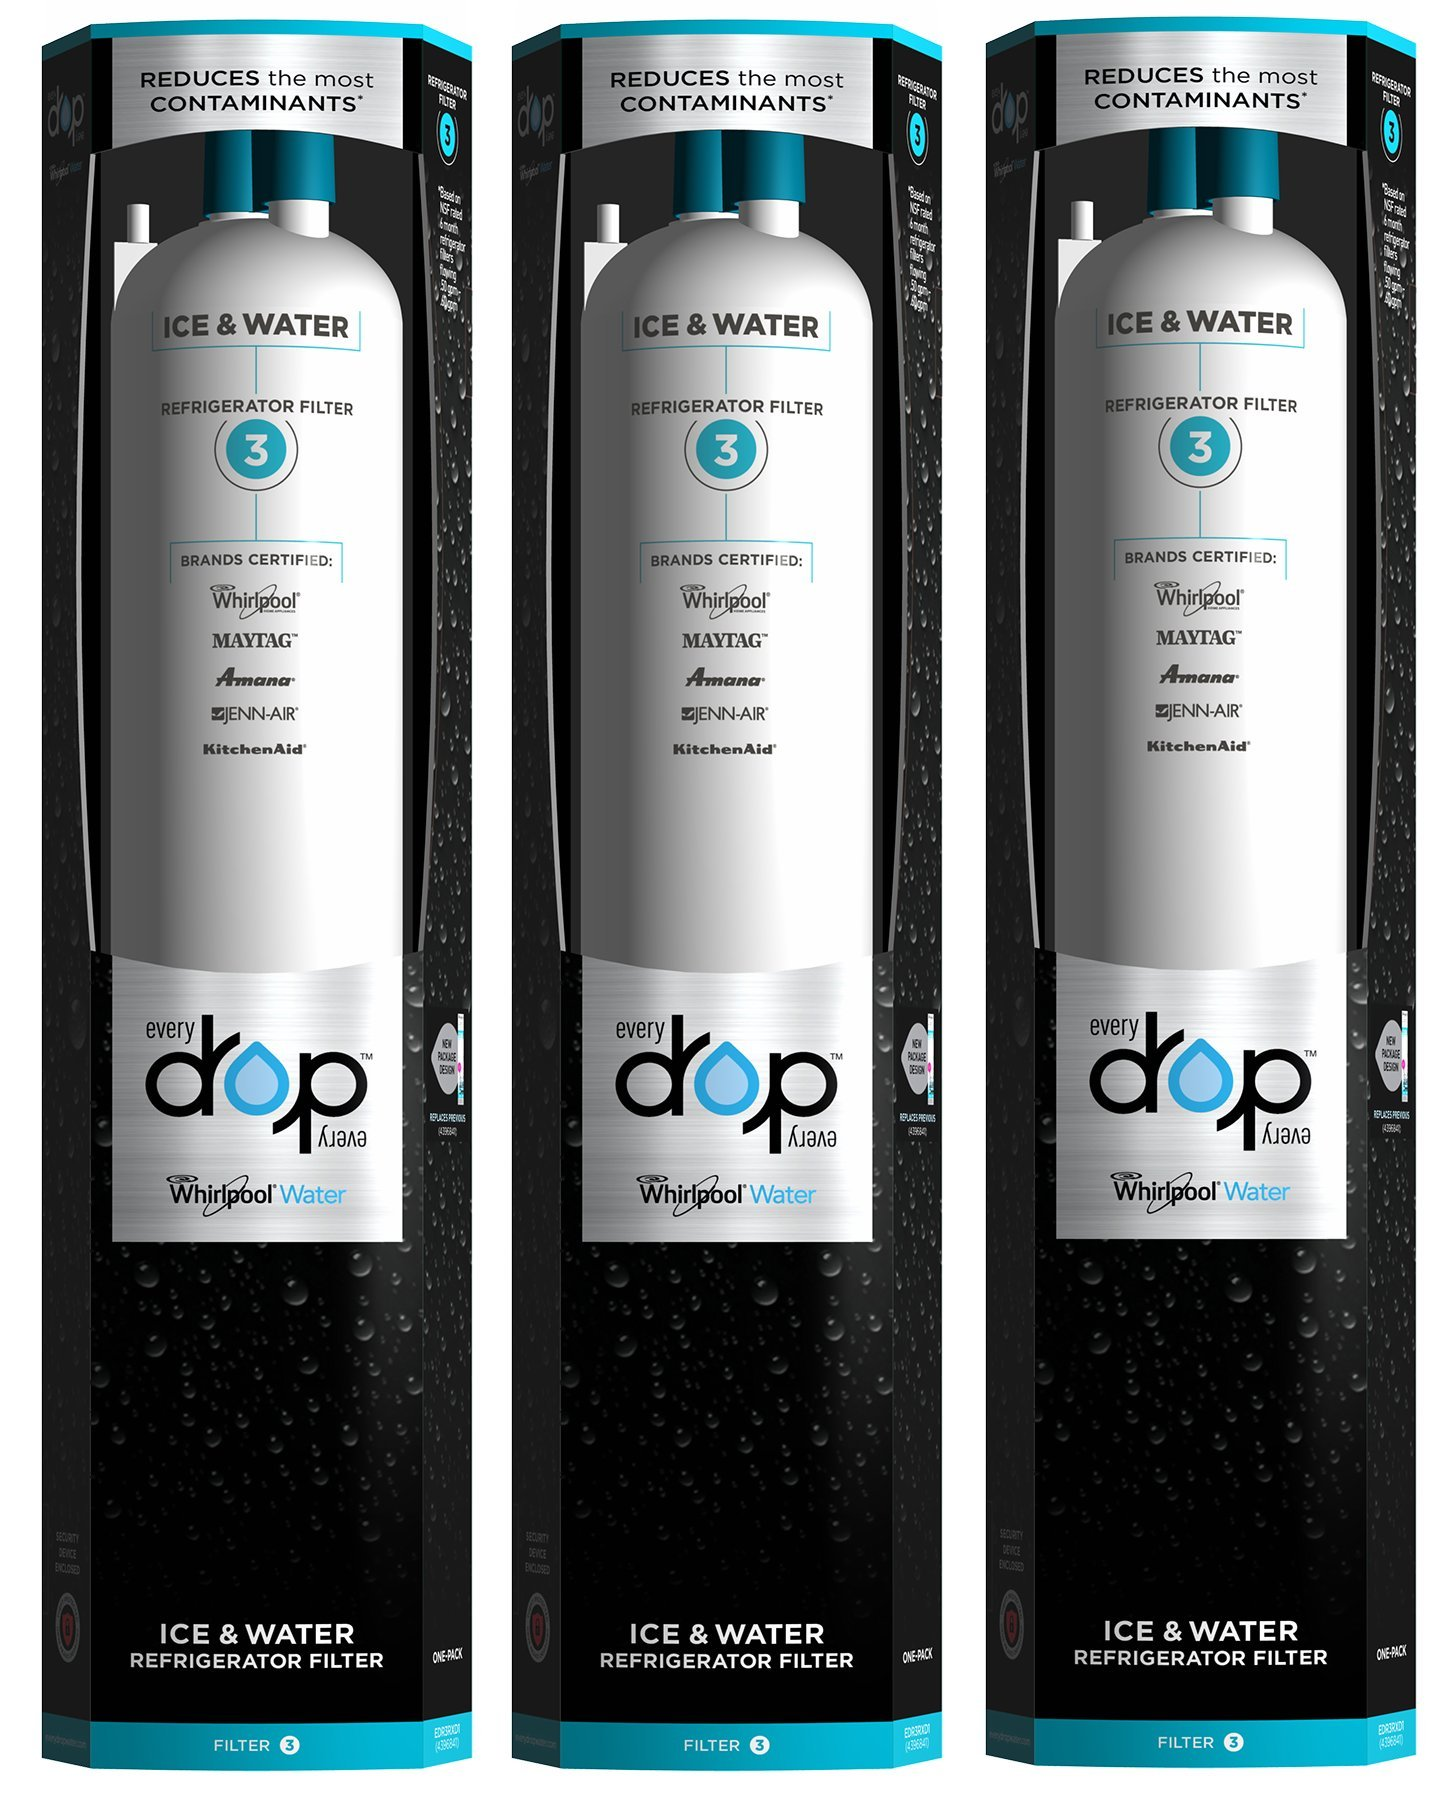 EveryDrop by Whirlpool Refrigerator Water Filter 3 (Pack of 3)